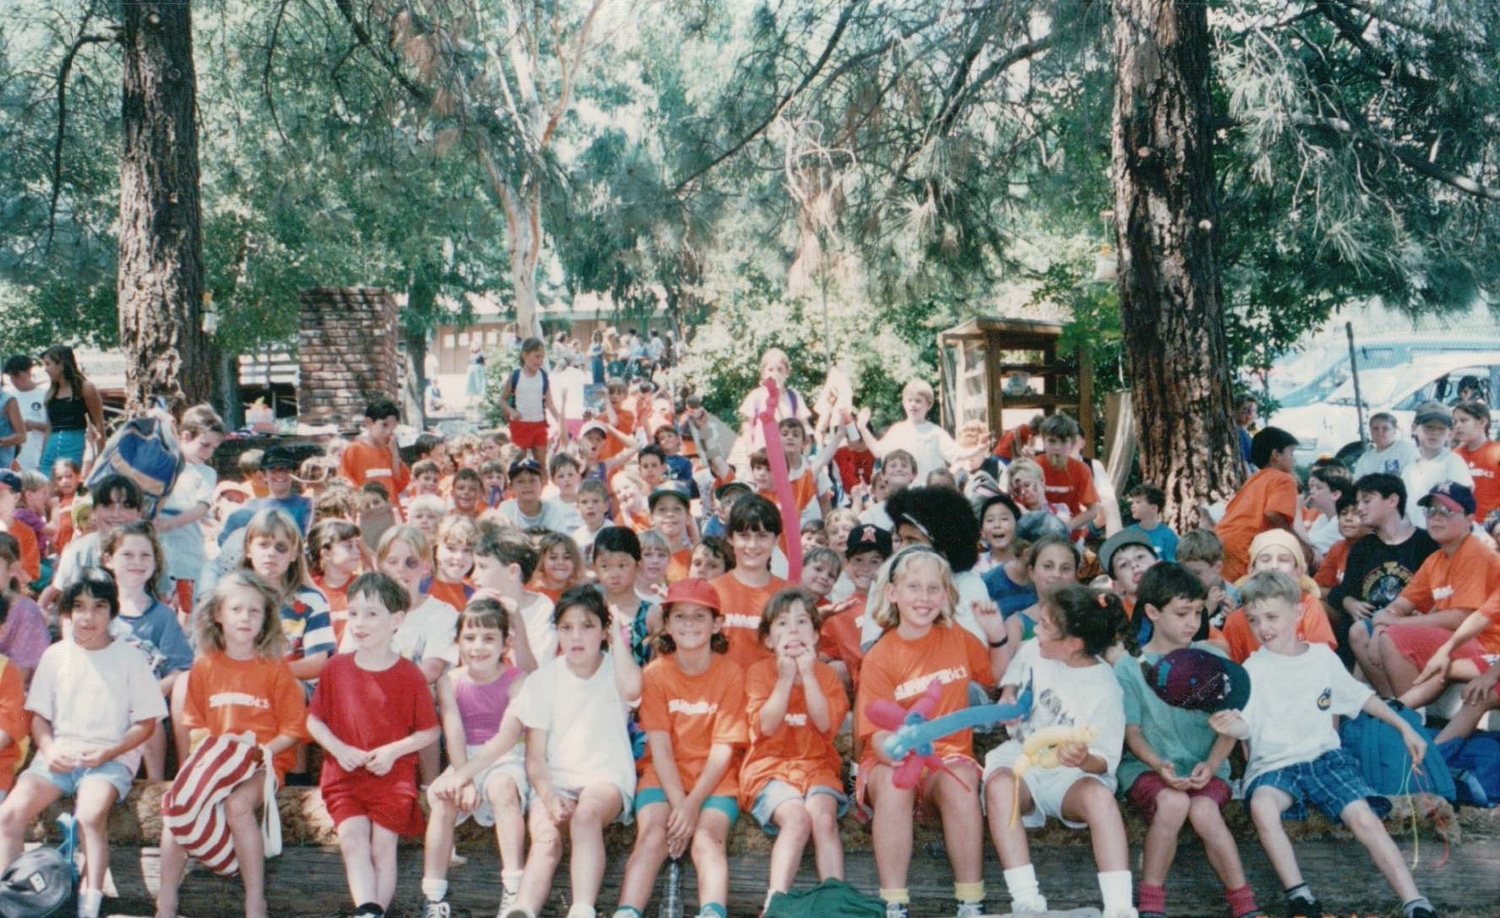 Campfire at Summerkids in the mid-1990s.